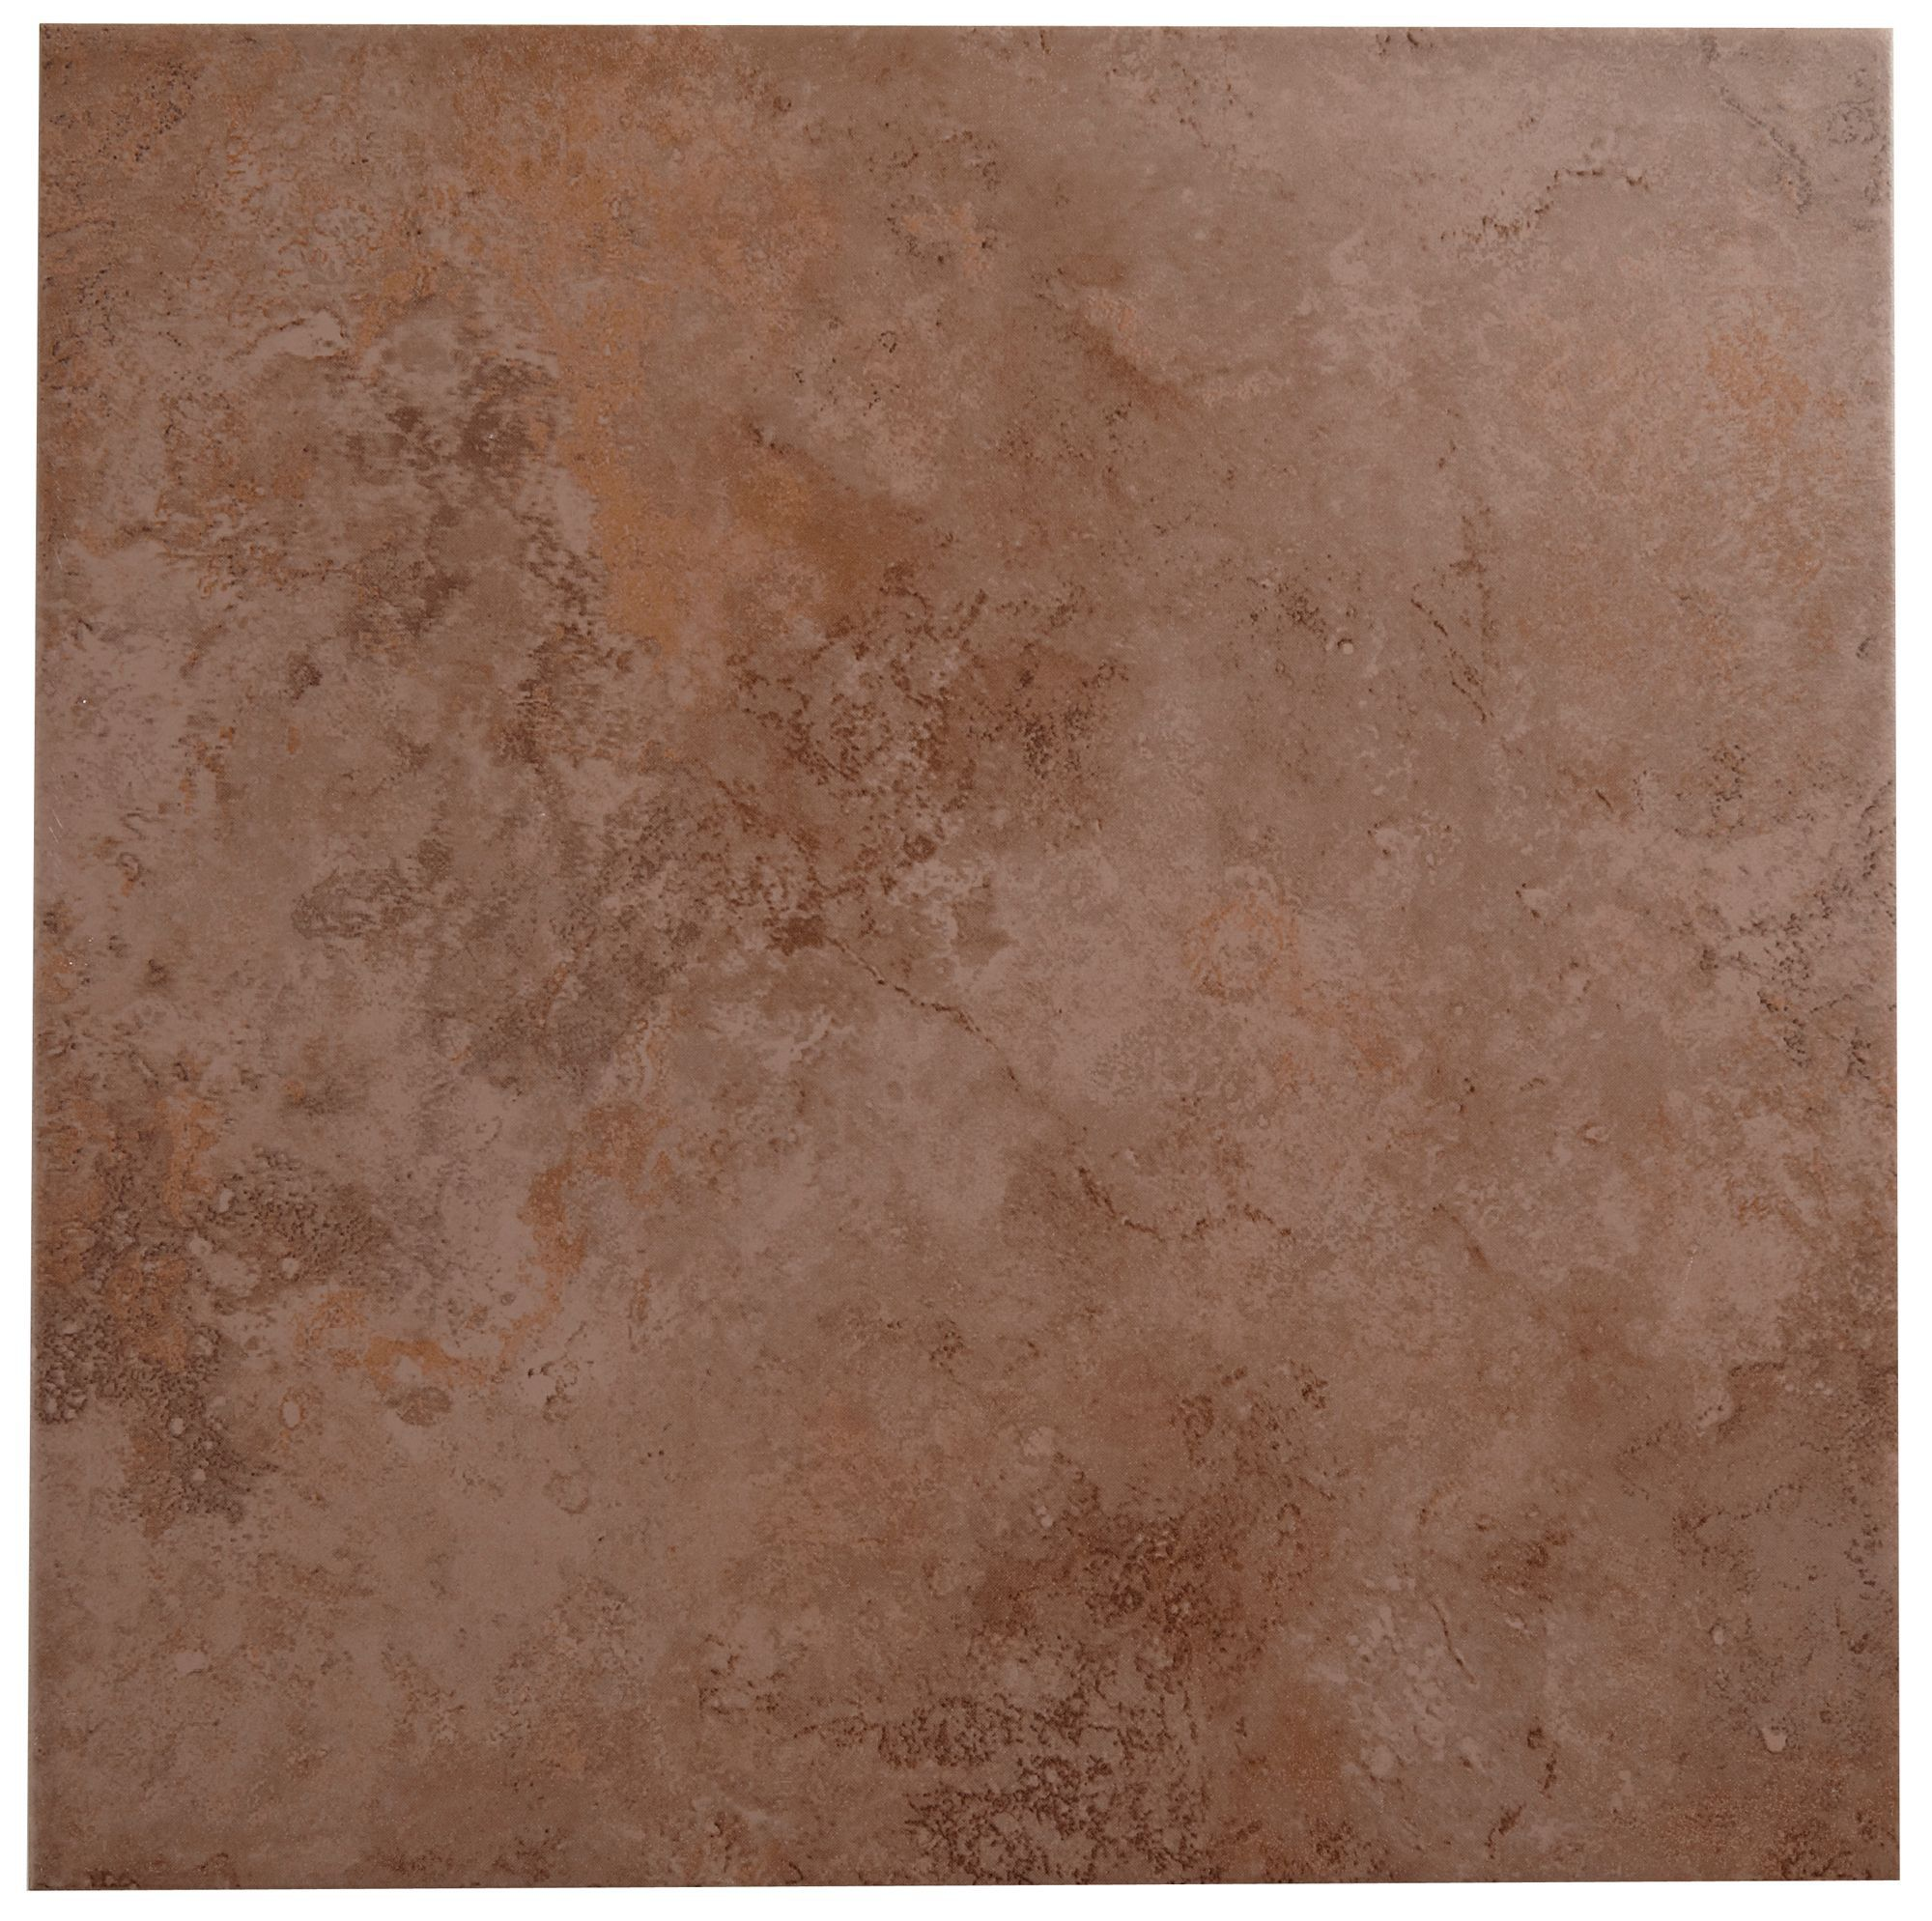 Castle travertine chocolate stone effect ceramic wall floor tile castle travertine chocolate stone effect ceramic wall floor tile pack of 5 l450mm w450mm departments diy at bq doublecrazyfo Choice Image